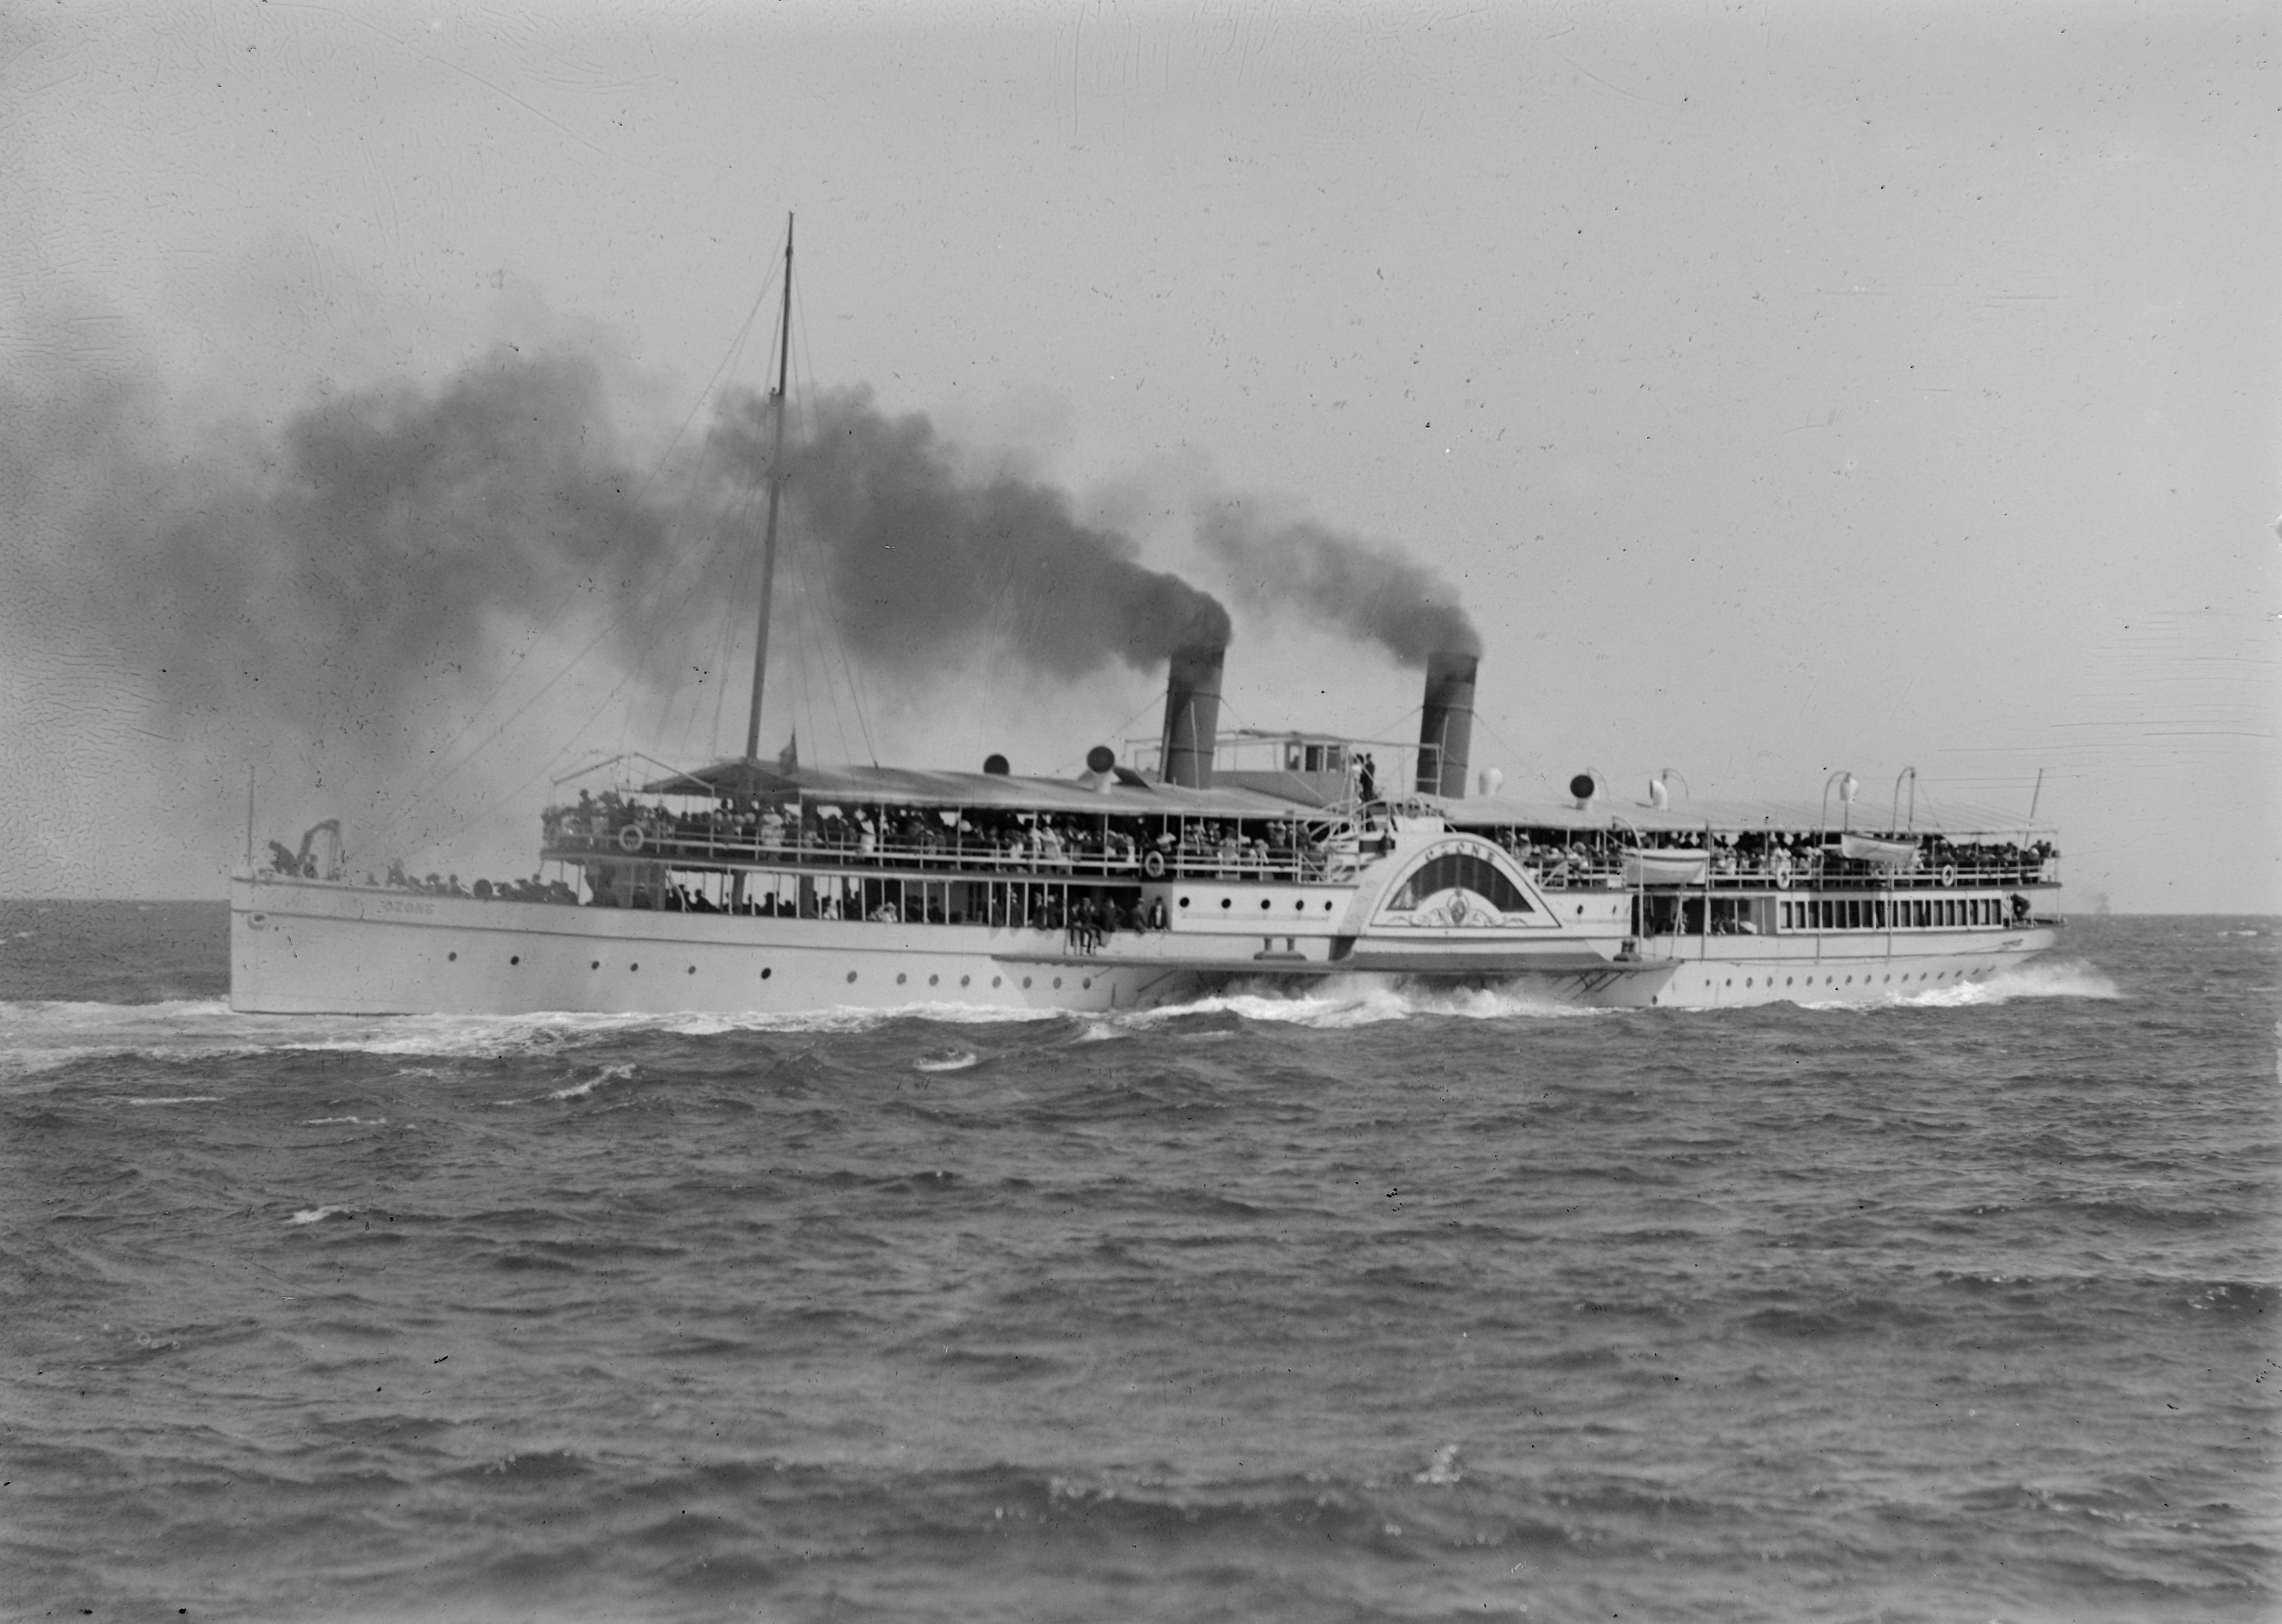 File:OZONE (Paddle Steamer) - SLV H91.250-1097.jpg